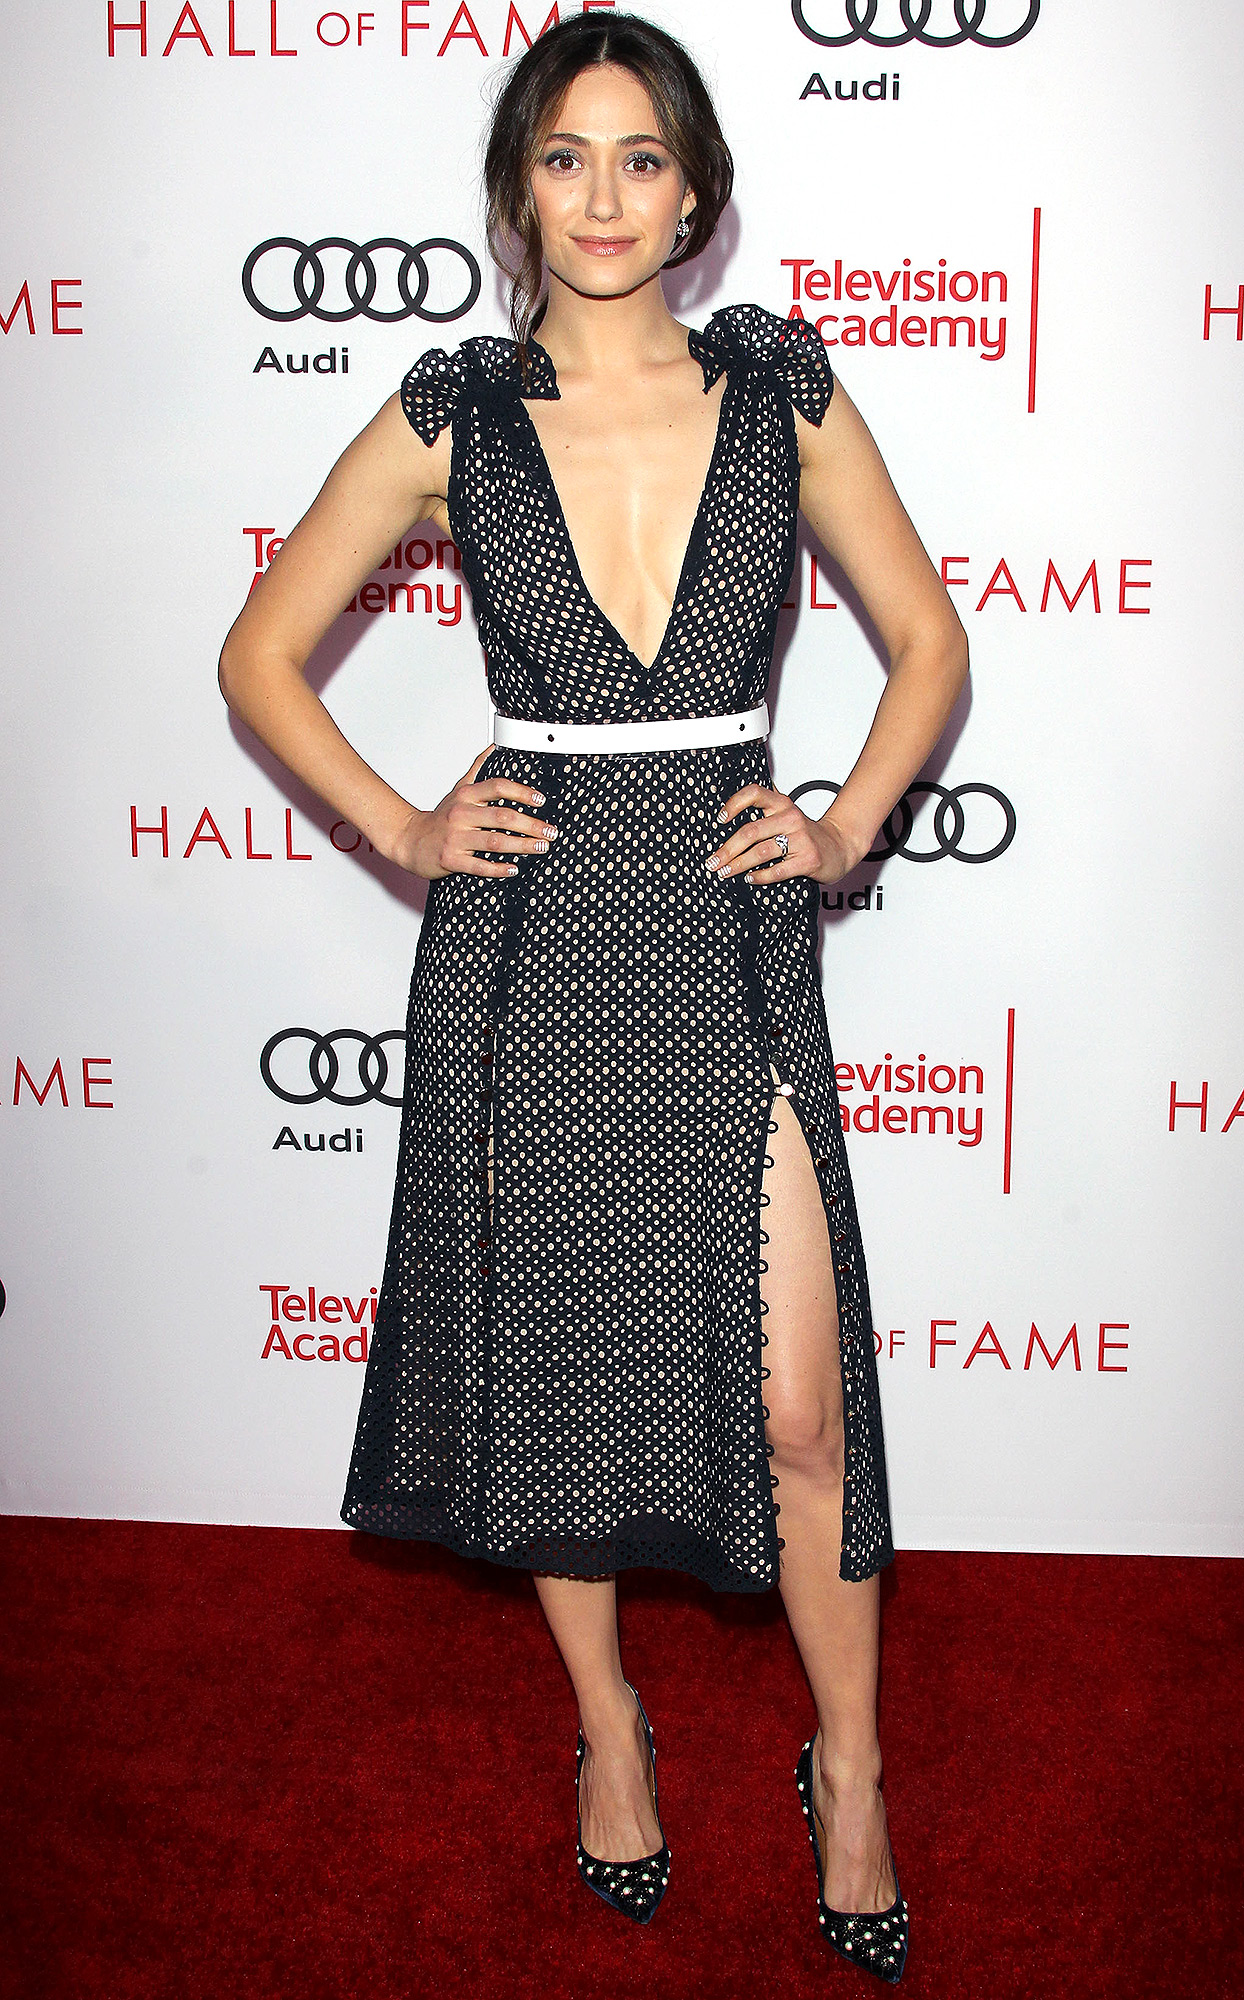 Television Academy Hall of Fame Induction Ceremony - Los Angeles